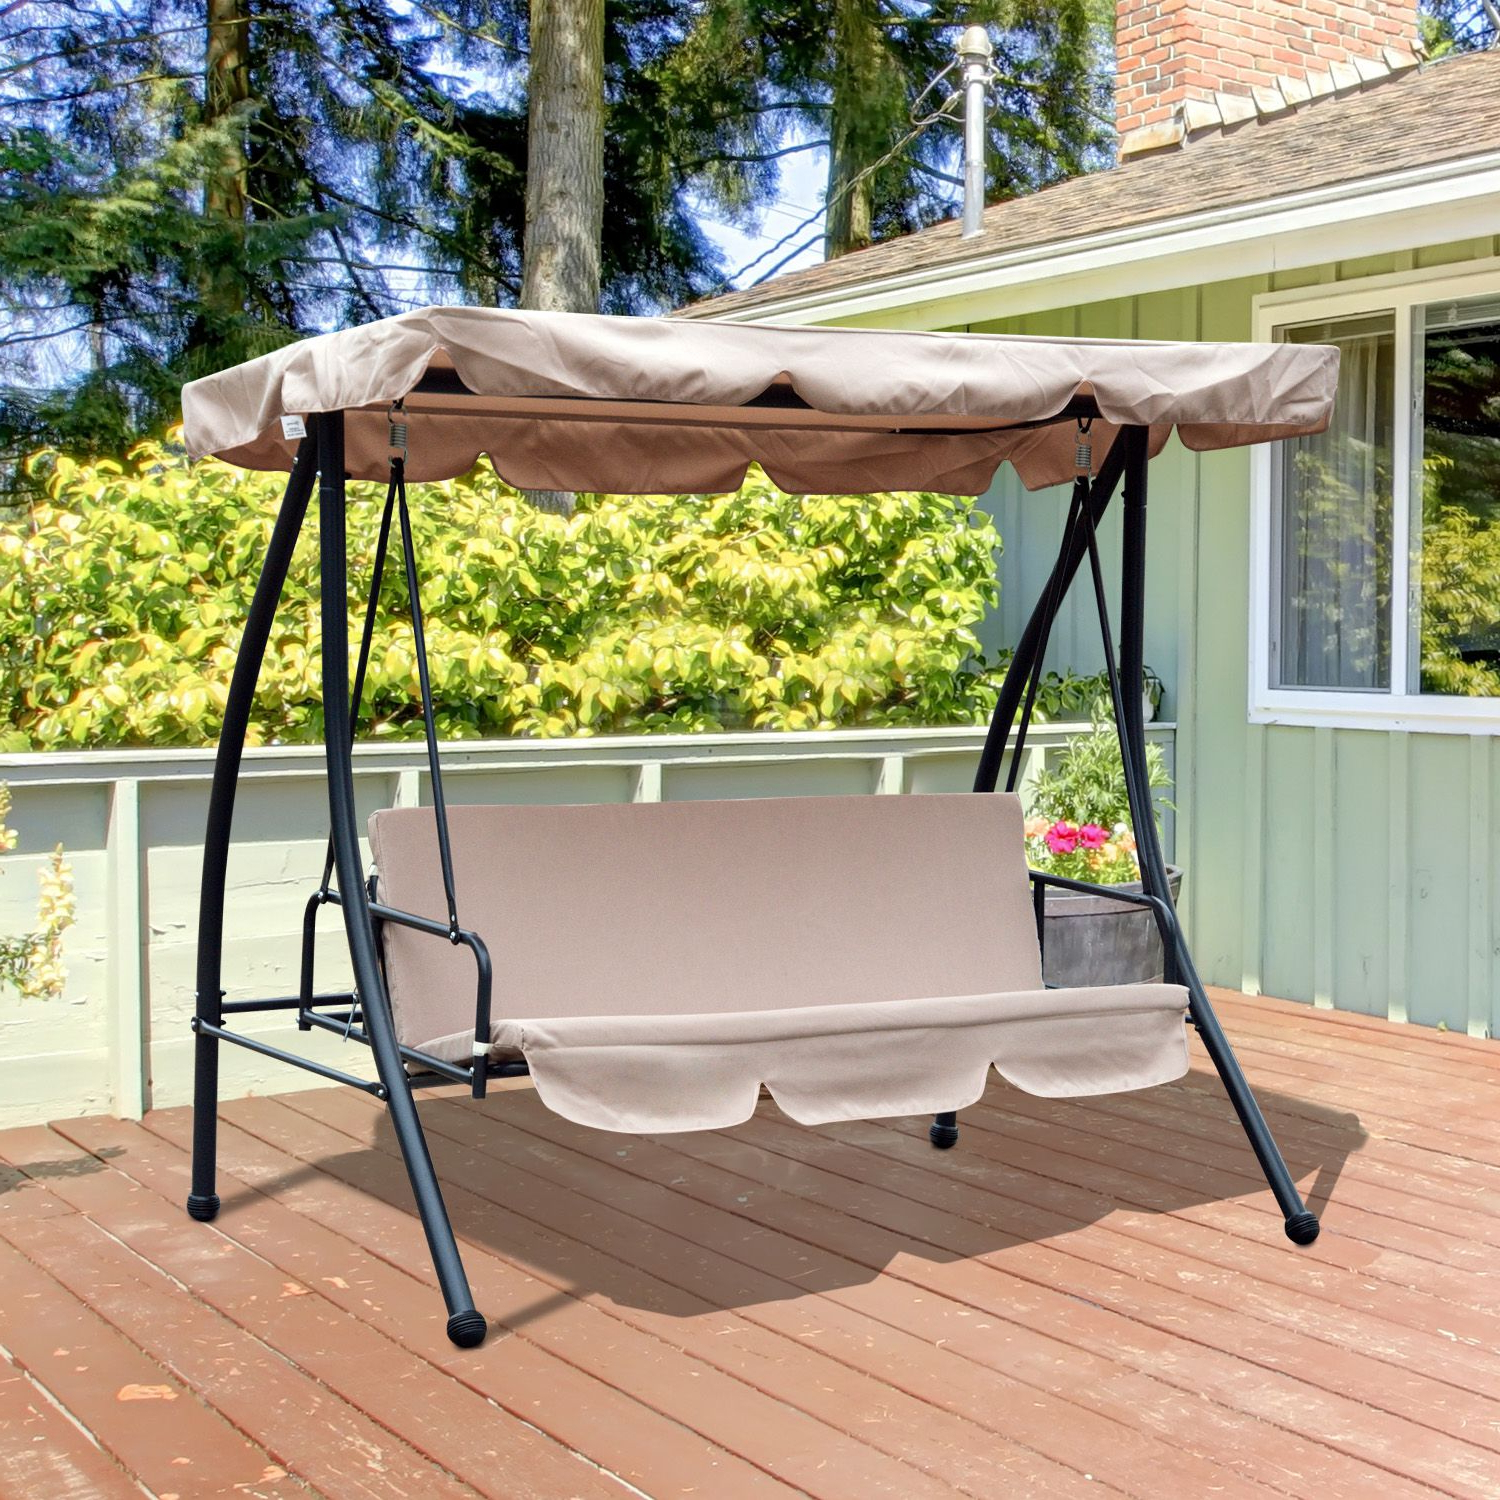 Popular Outsunny Convertible Patio Swing Chair 3 Person Hammock Cushioned Portable Outdoor With Tilt Canopy Beige Pertaining To 2 Person Outdoor Convertible Canopy Swing Gliders With Removable Cushions Beige (View 16 of 25)